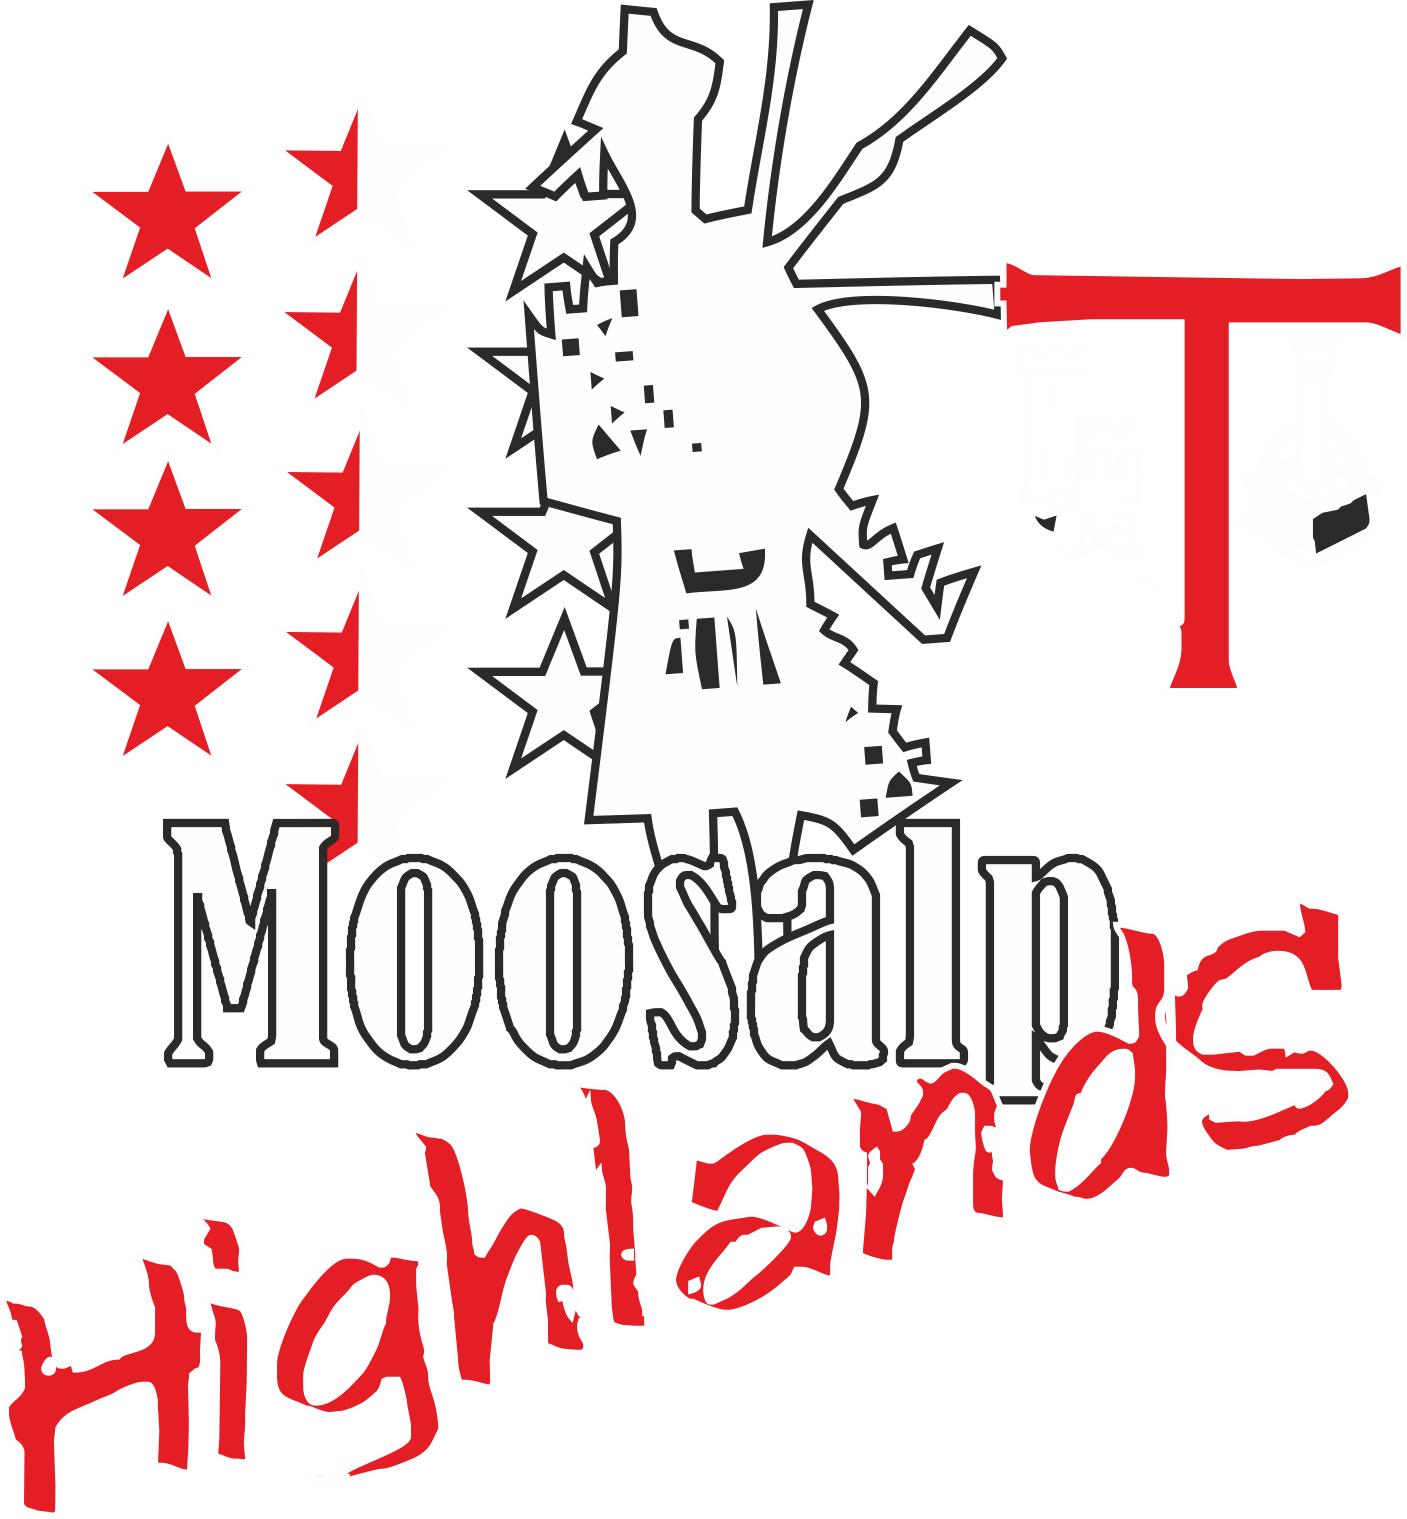 Moosalp-Highlands